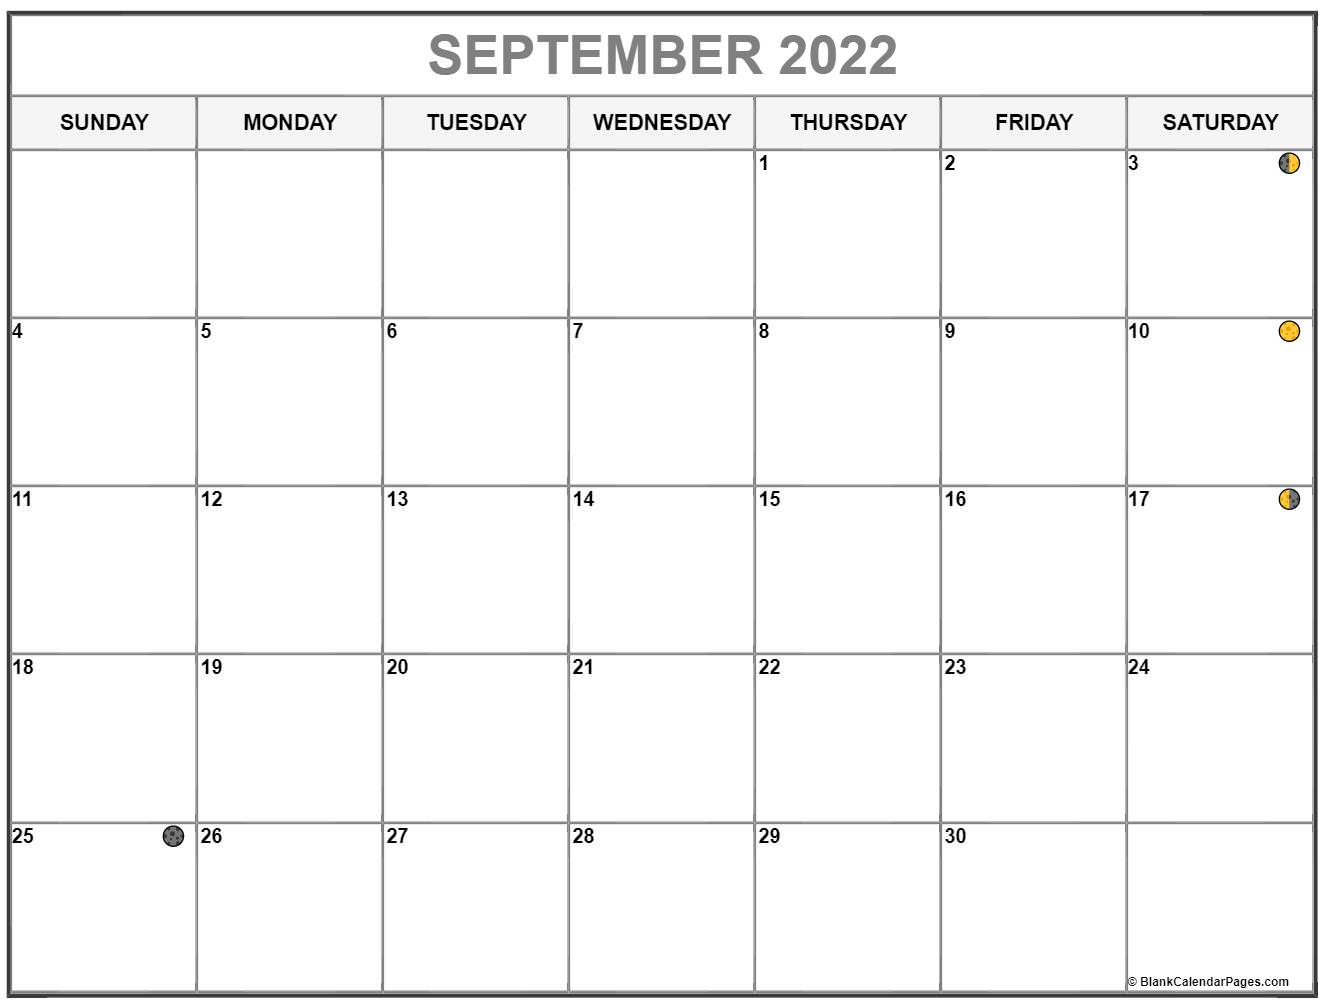 September 2022 lunar calendar. Moon phases with USA holidays